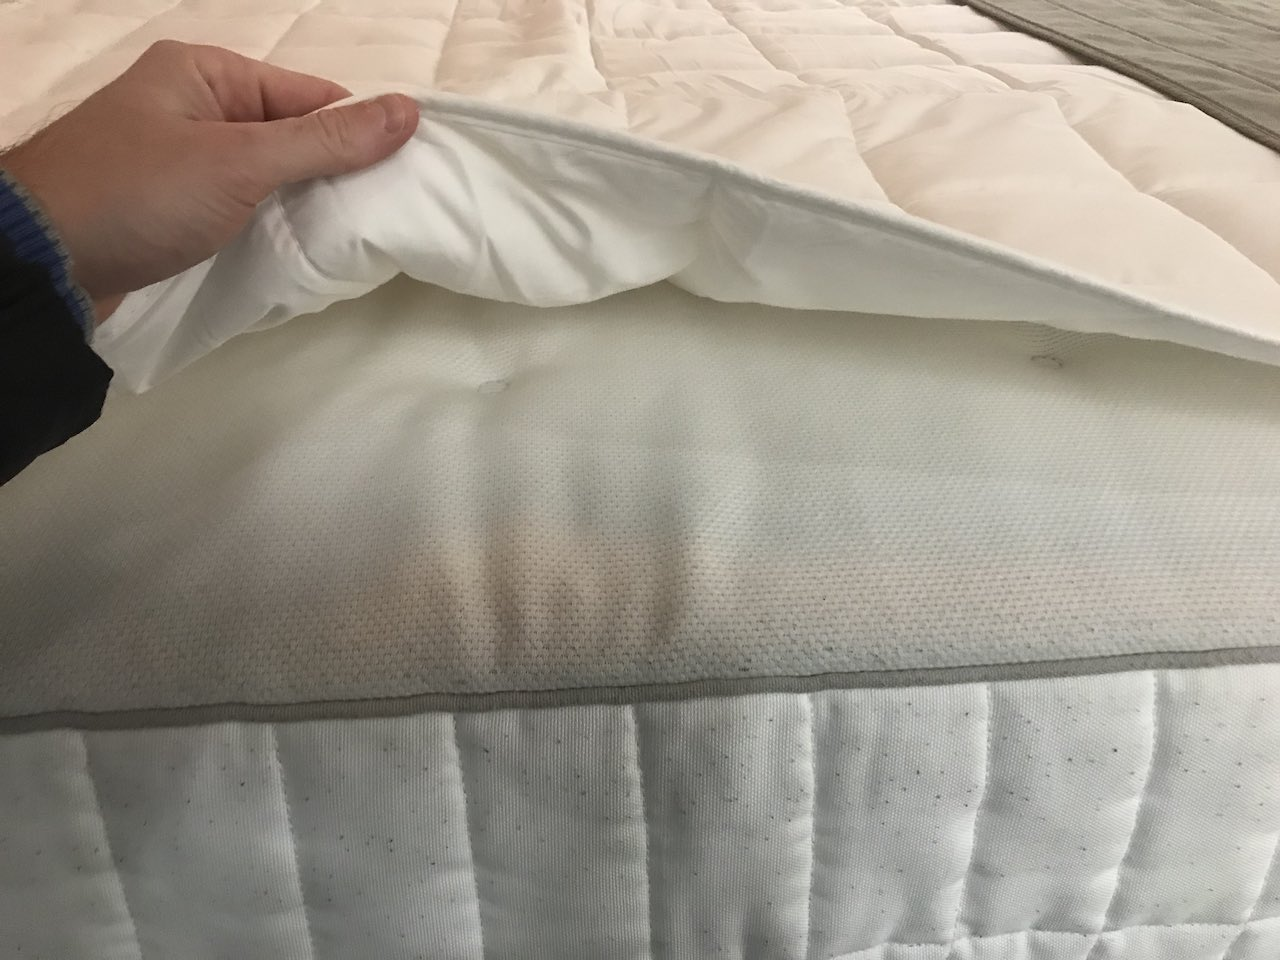 Mattress detailing being shown on an Ikea mattress